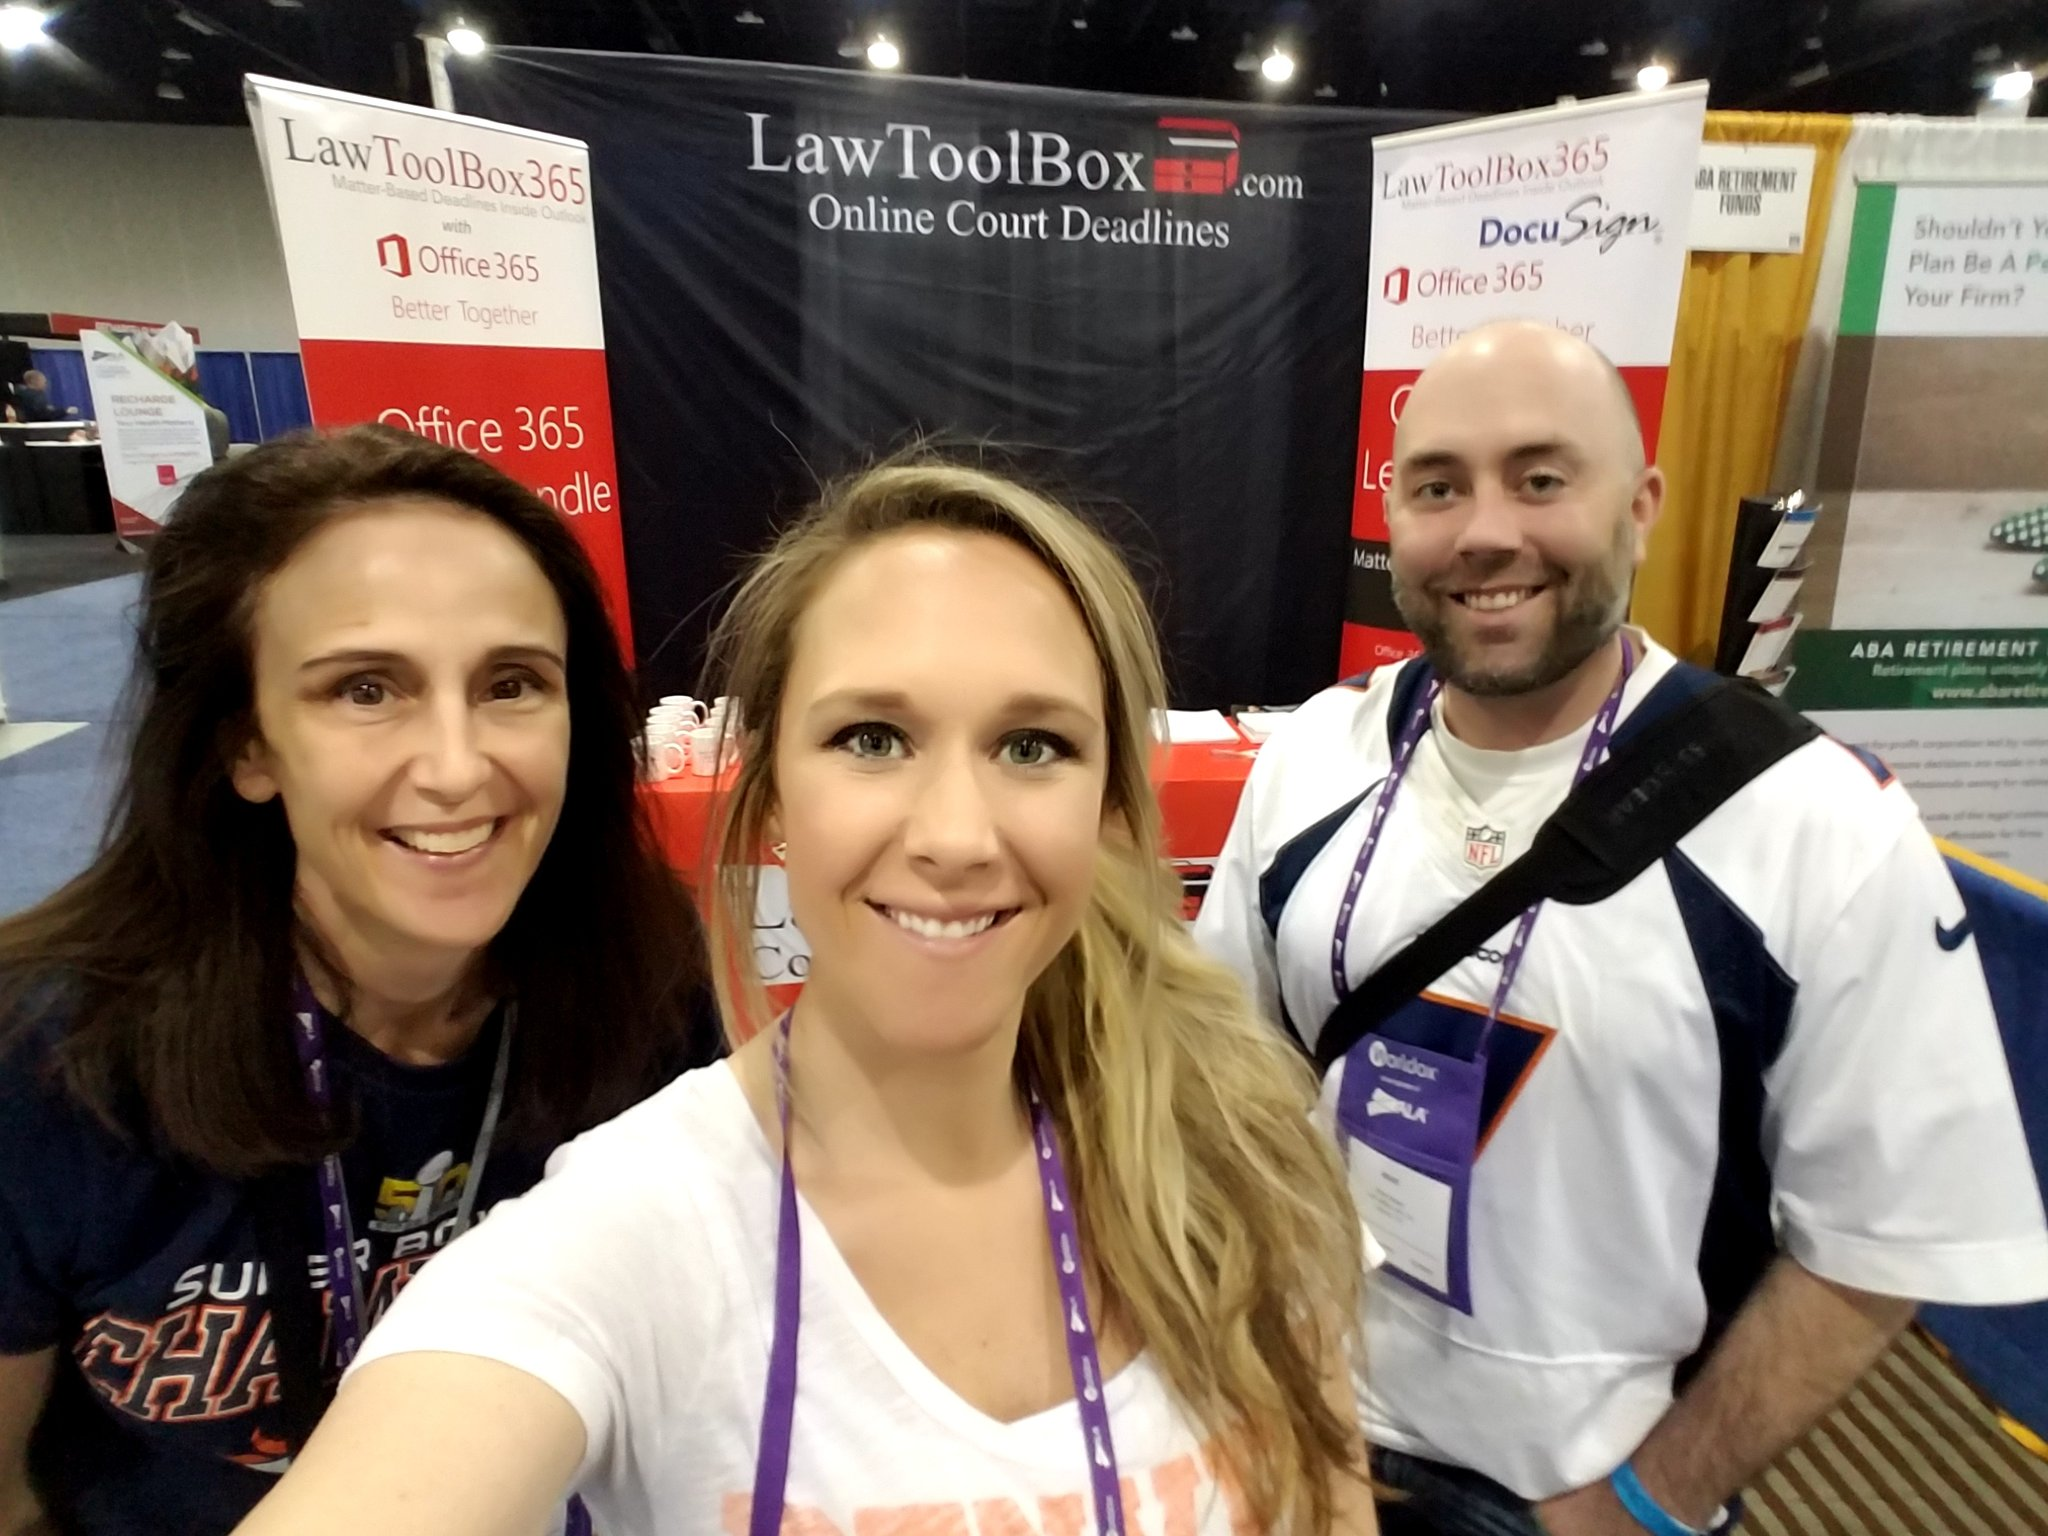 The LawToolBox crew has arrived to #ALAConf17 !!! Stop by both 831 to learn about our awesome LawToolBox365 app! https://t.co/4QHkrjFKep